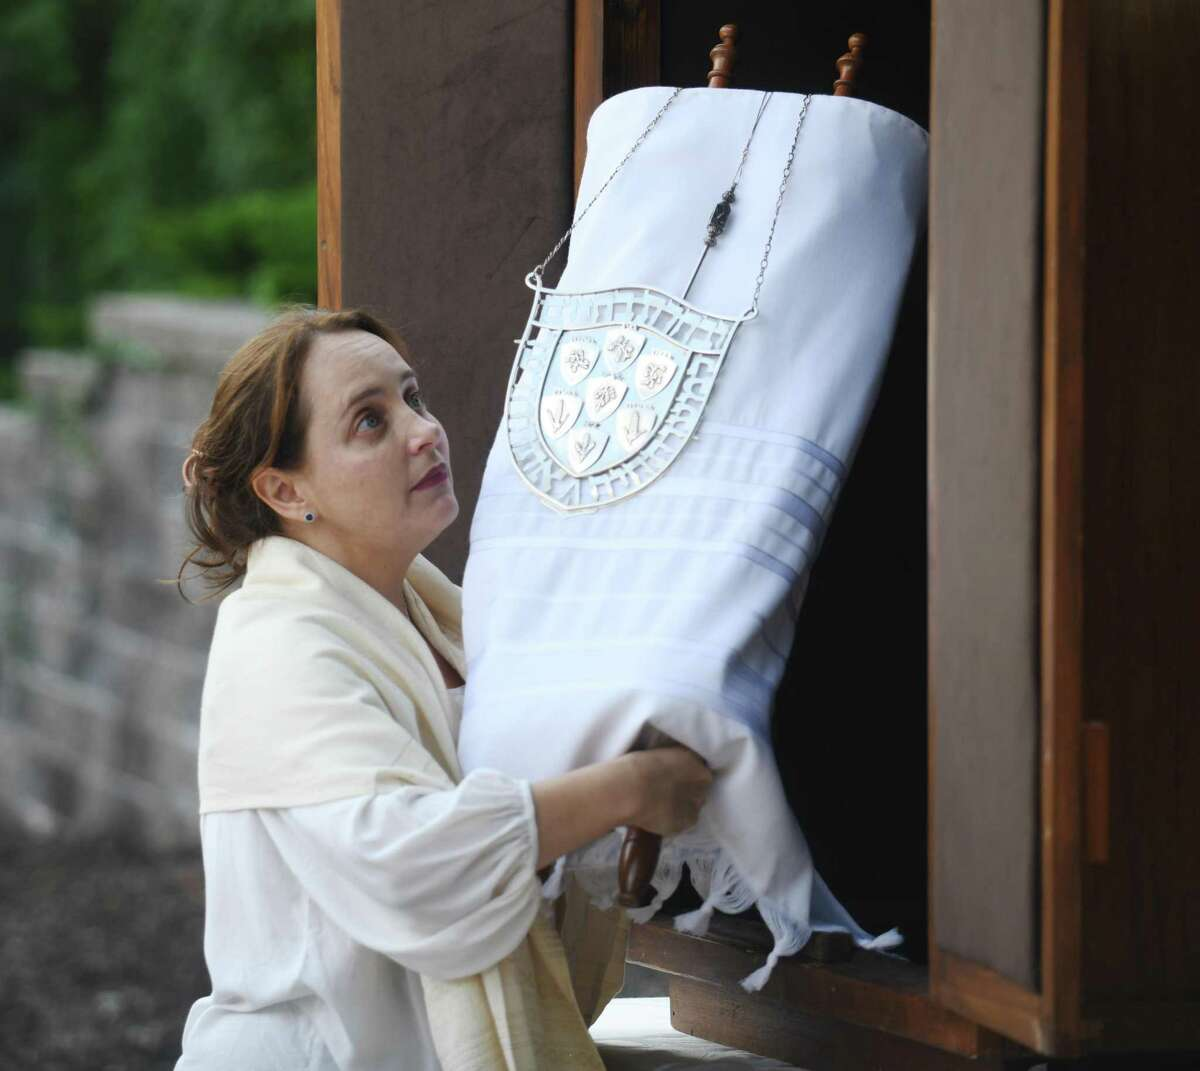 Rabbi Jordie Gerson carries the Torah during the Yom Kippur Family Service at Greenwich Reform Synagogue in Greenwich, Conn. Thursday, Sept. 16, 2021. Congregants celebrated Yom Kippur, the Jewish day of atonement, with a variety of readings and songs.